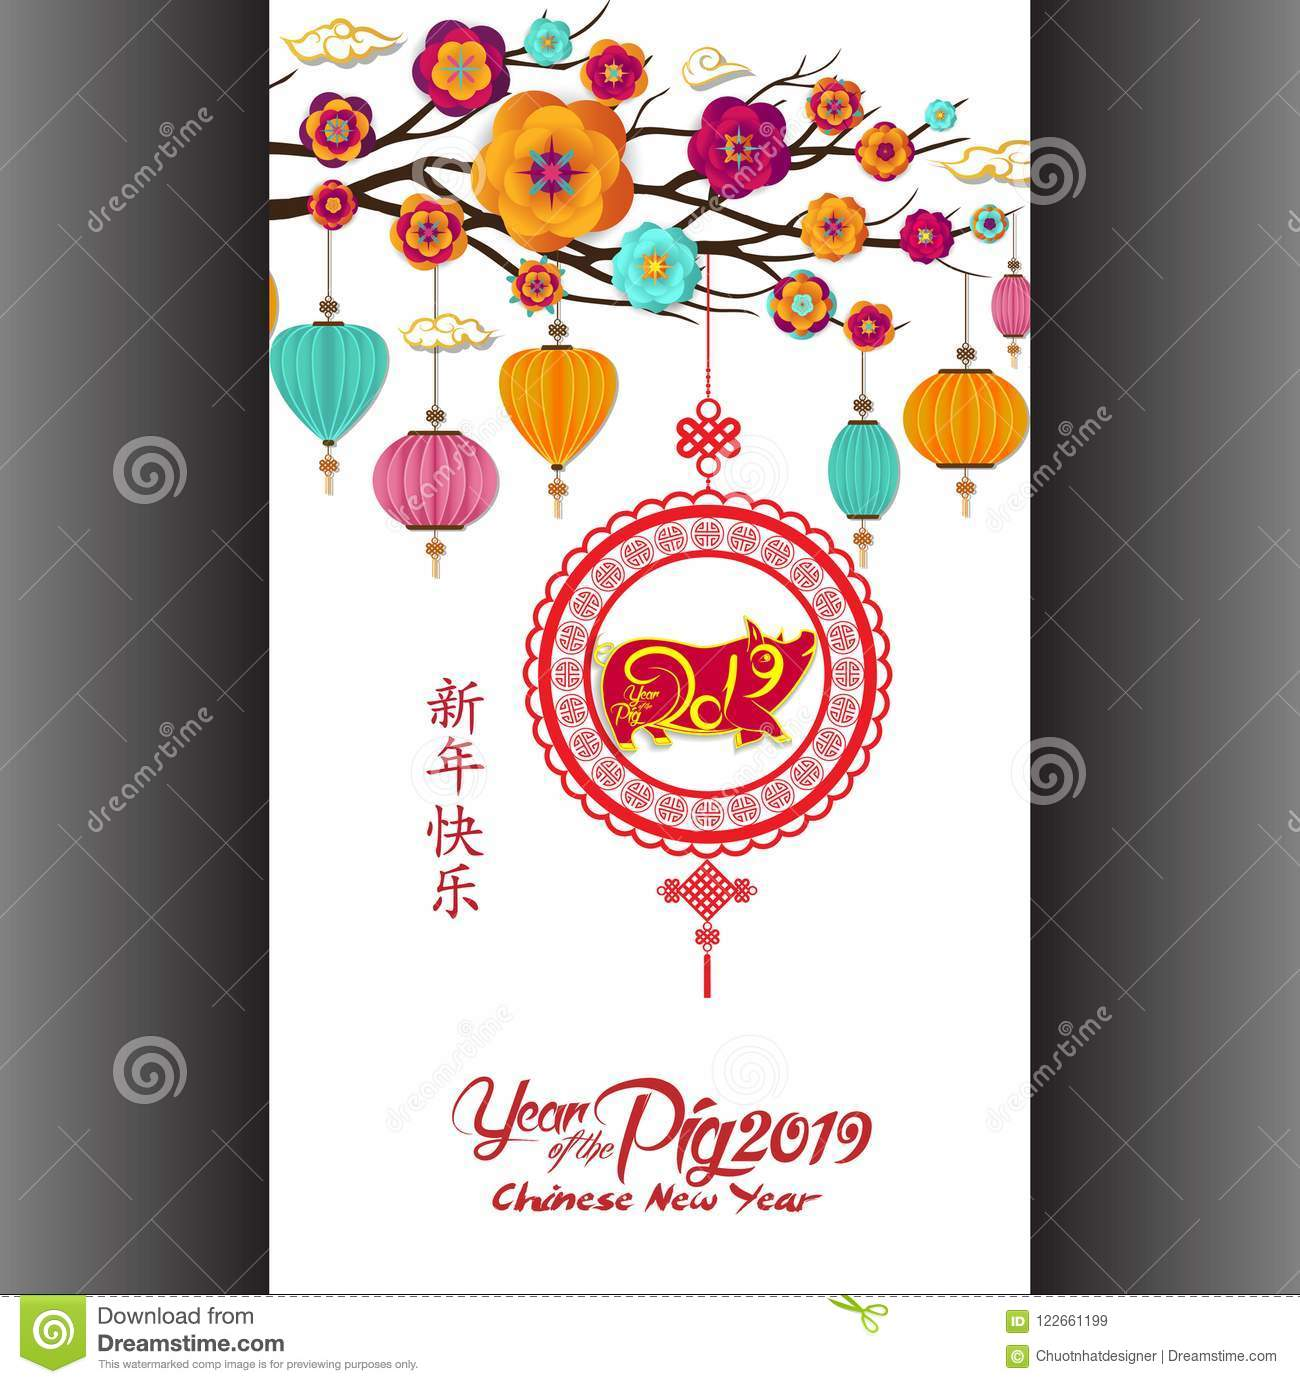 creative chinese new year 2019 invitation cards year of the pig chinese characters mean happy new year